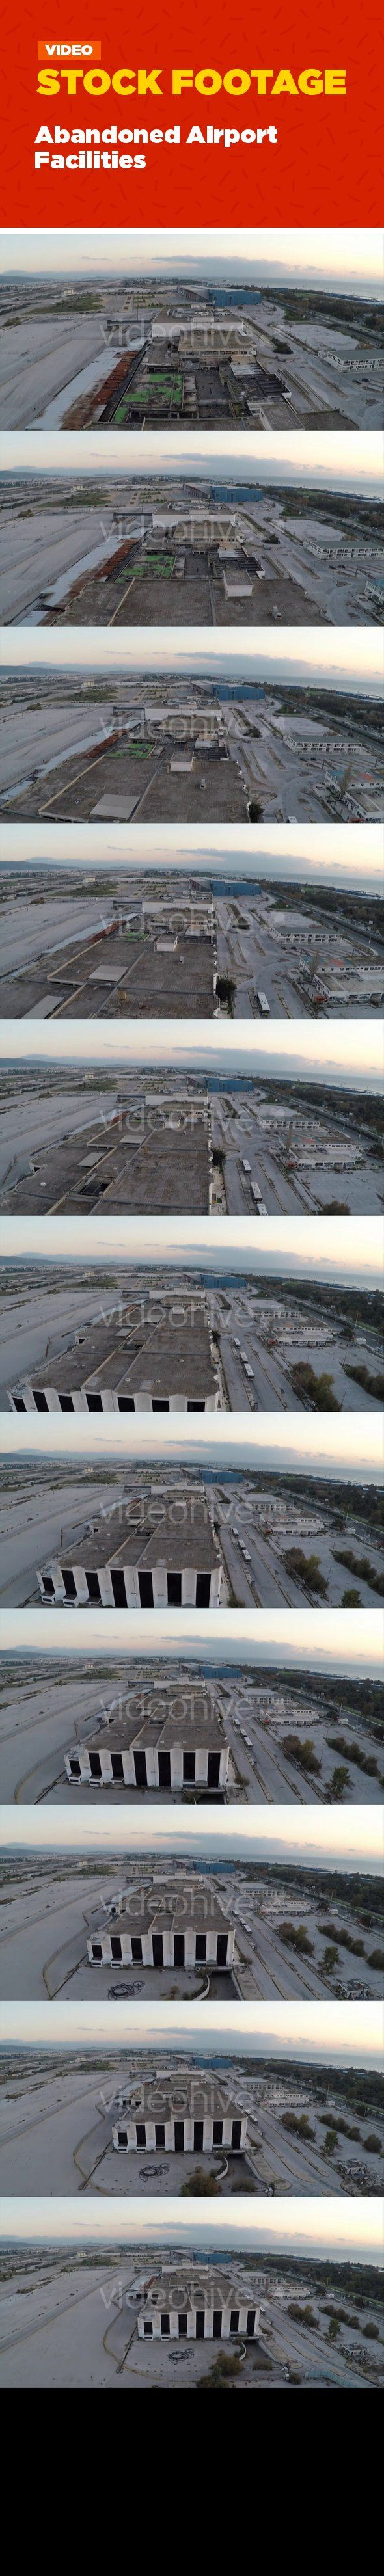 "abandoned, aerial, airport, athens, buildings, corrupted, damaged facilities, deserted, drone, facility, flying, greece, rooftops, ruined, urban Aerial view of the facilities of an abandoned airport.   	Music in the preview is not included.   	You can find here the track ""Tragedy Theme""  by WorldBeyond   	 Find more items fast:   	SEA – SUN – ISLANDS – CLOUDS – FIRE – ANIMALS – PLANTS – UNDERWATER   	CITY – TECHNOLOGY – INDUSTRIAL – WEATHER – HOLIDAYS – BUILDINGS..."